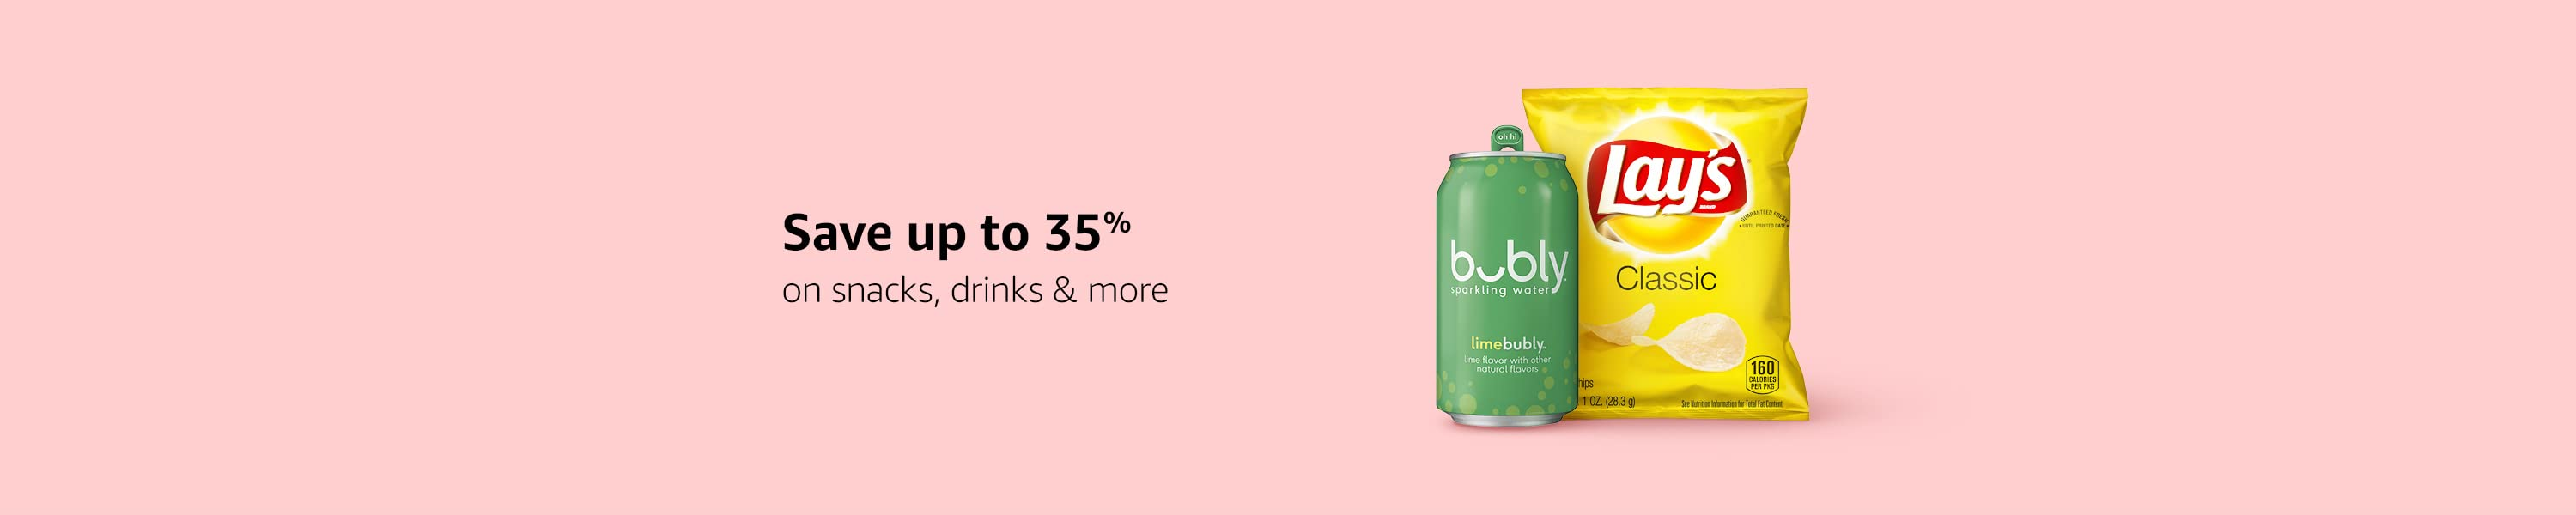 Save up to 35 percent on snacks, drinks & more